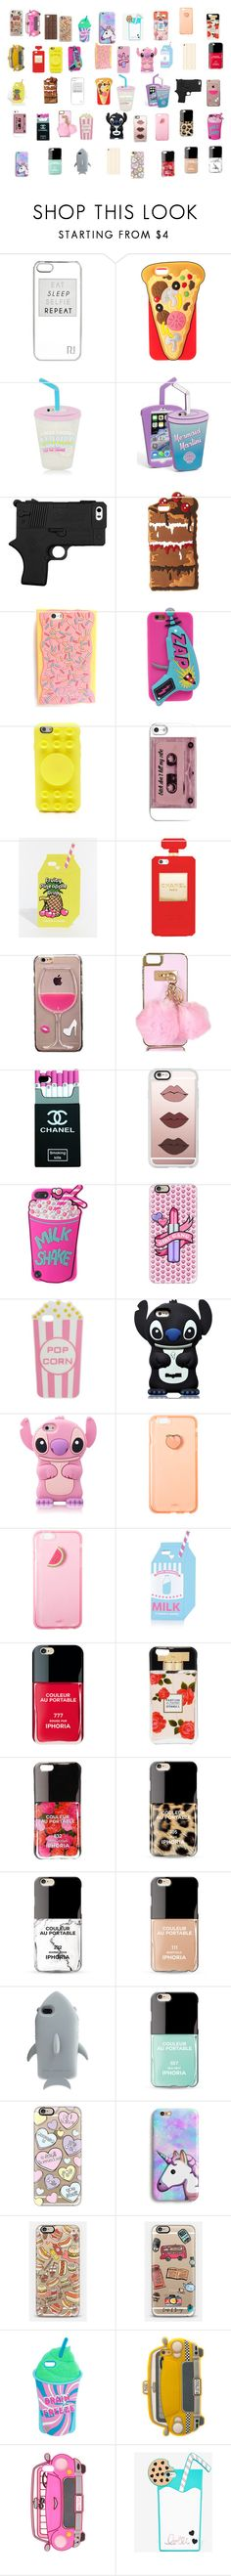 """""""iPhone cases 2"""" by queenjess12 ❤ liked on Polyvore featuring interior, interiors, interior design, home, home decor, interior decorating, River Island, Skinnydip, Marc by Marc Jacobs and Casetify"""